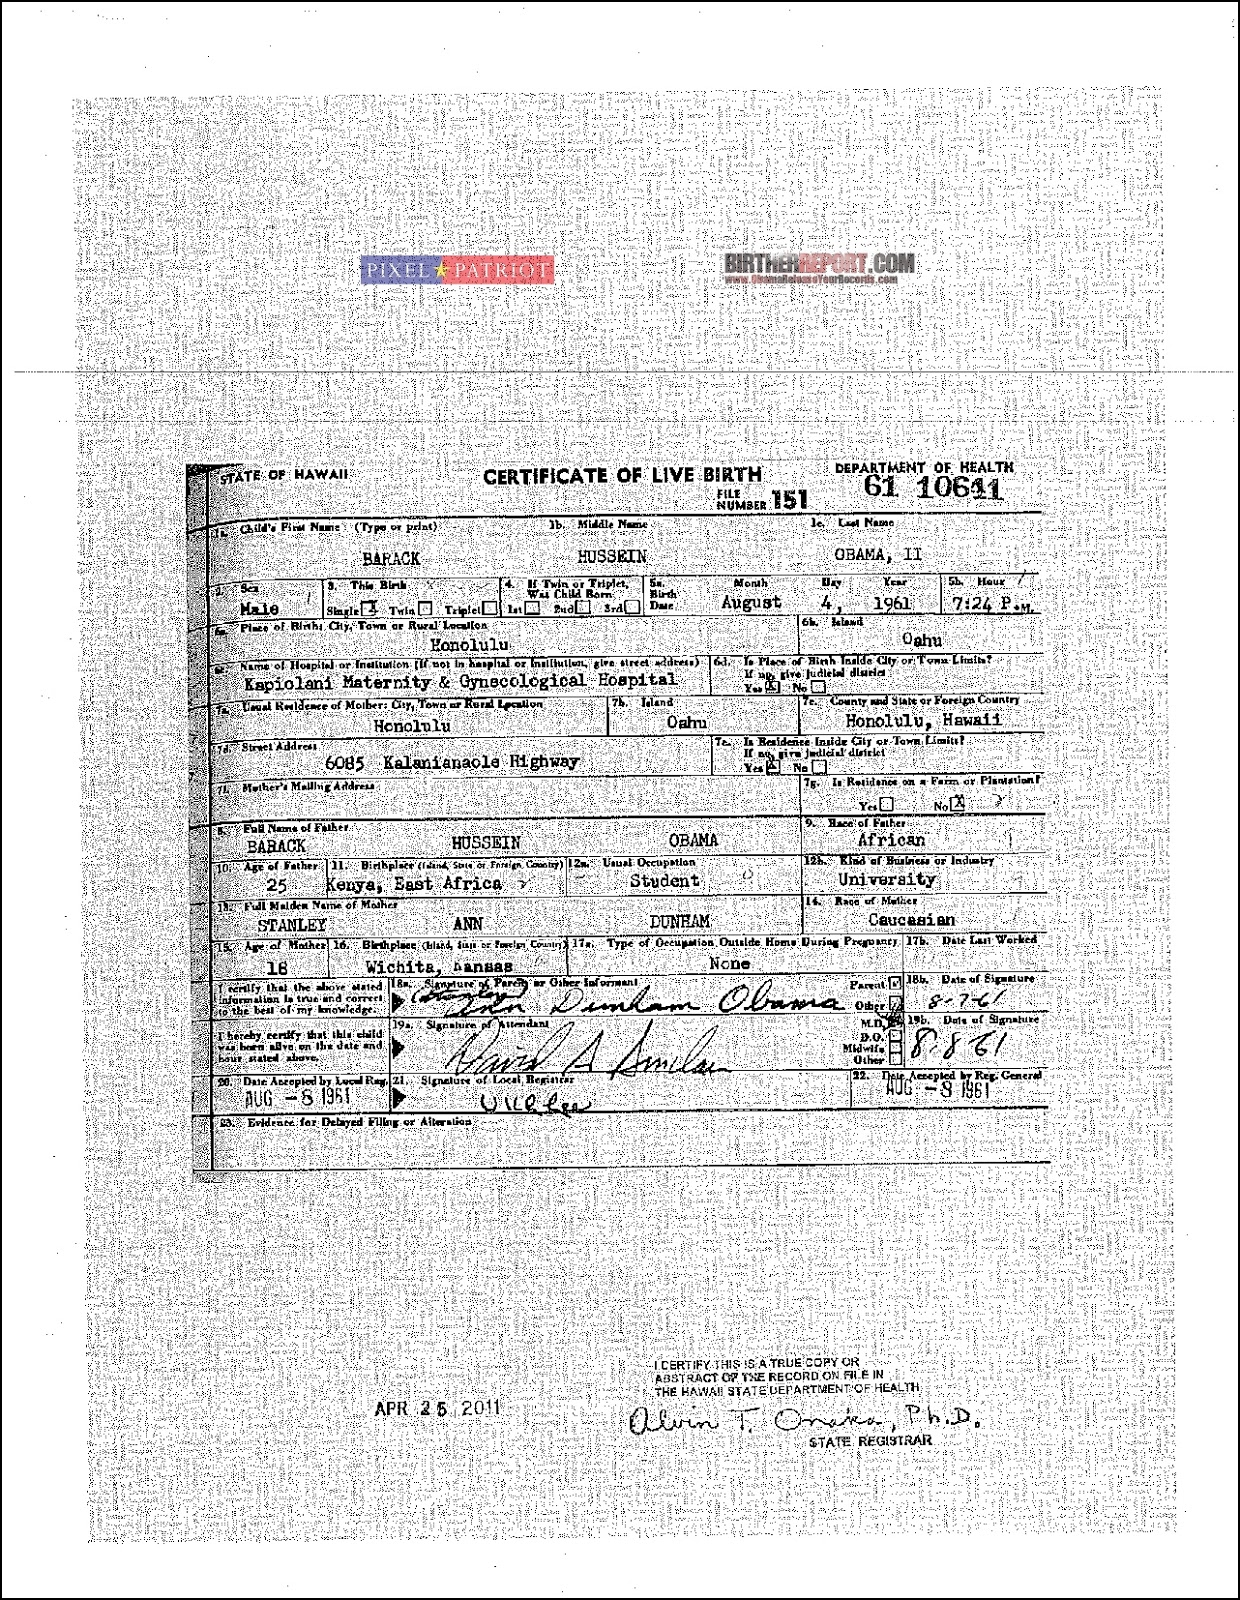 Three Birth Certificates Now Linked To Obama Eligibility Case Appeal